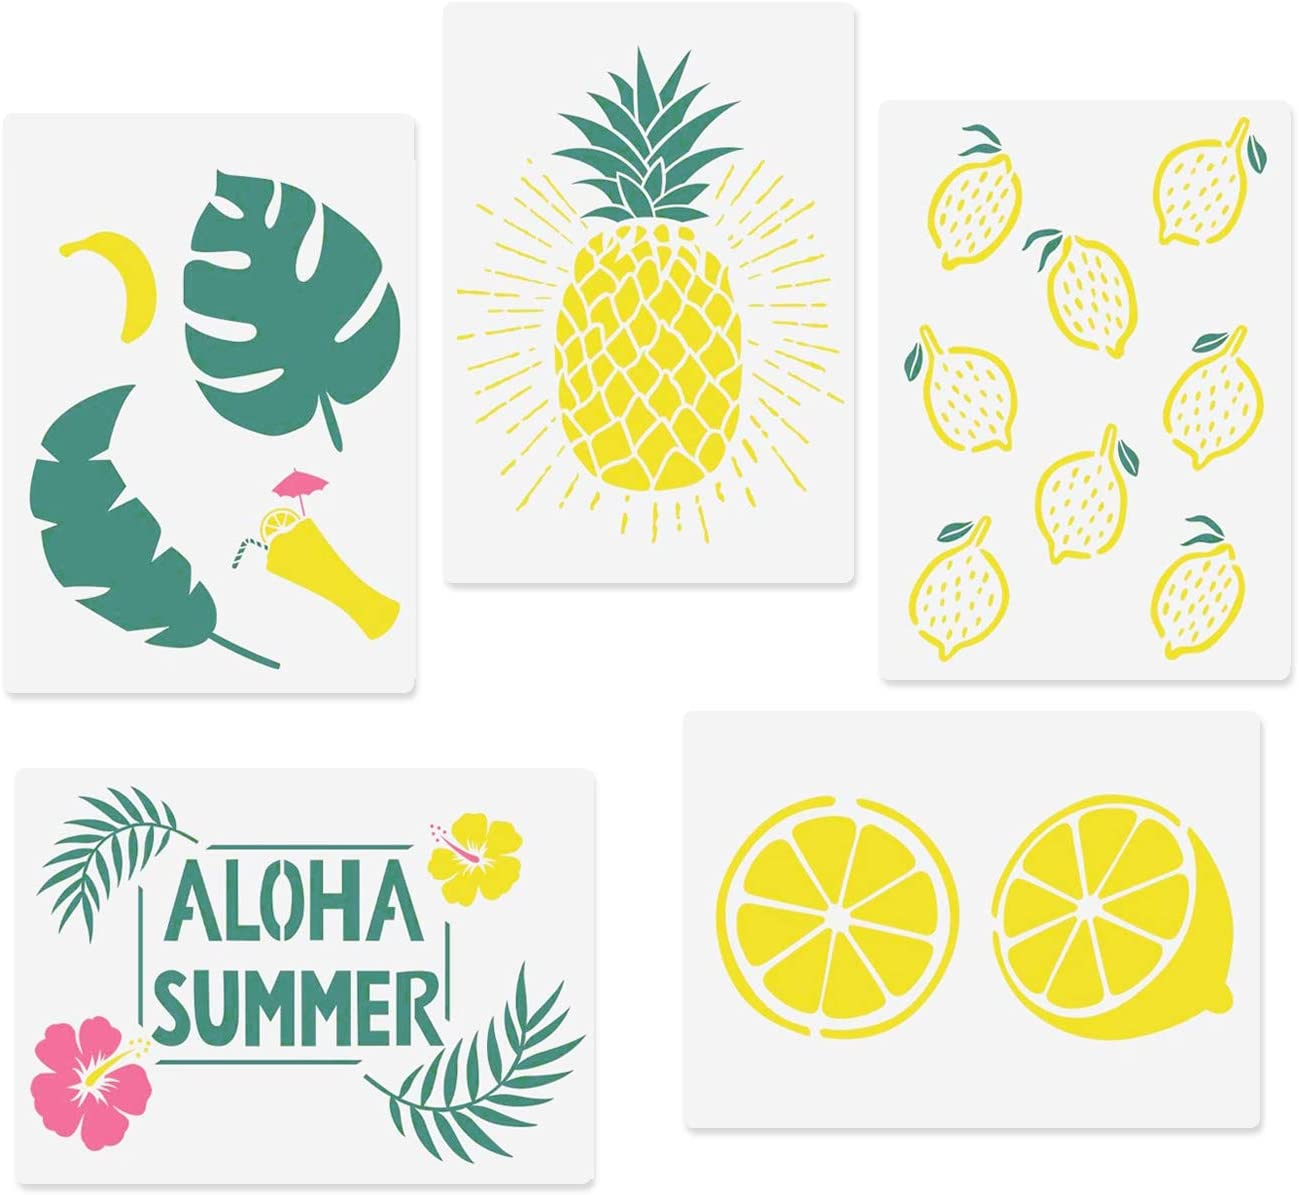 Amazon Com Codohi Aloha Stencils Lemon Pineapple Hawaii Flower Tropical Leaves 5 Packs A4 Reusable Mylar Template For Journaling Diy Home Decor Art Projects Painting Wall 11 7 X 8 26 Home Improvement